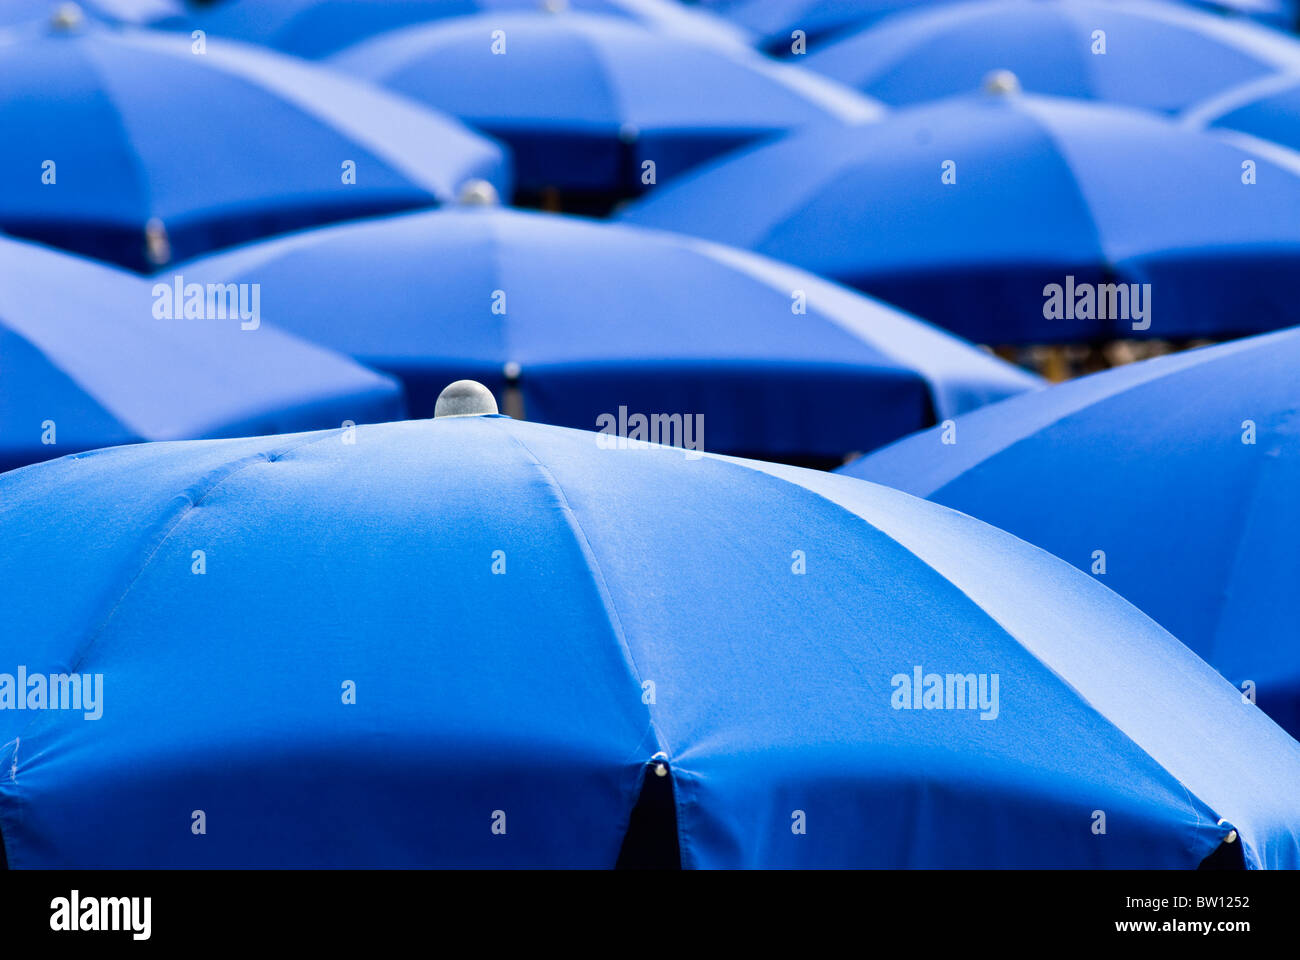 Blue sunshades, Italy, Europe Stock Photo